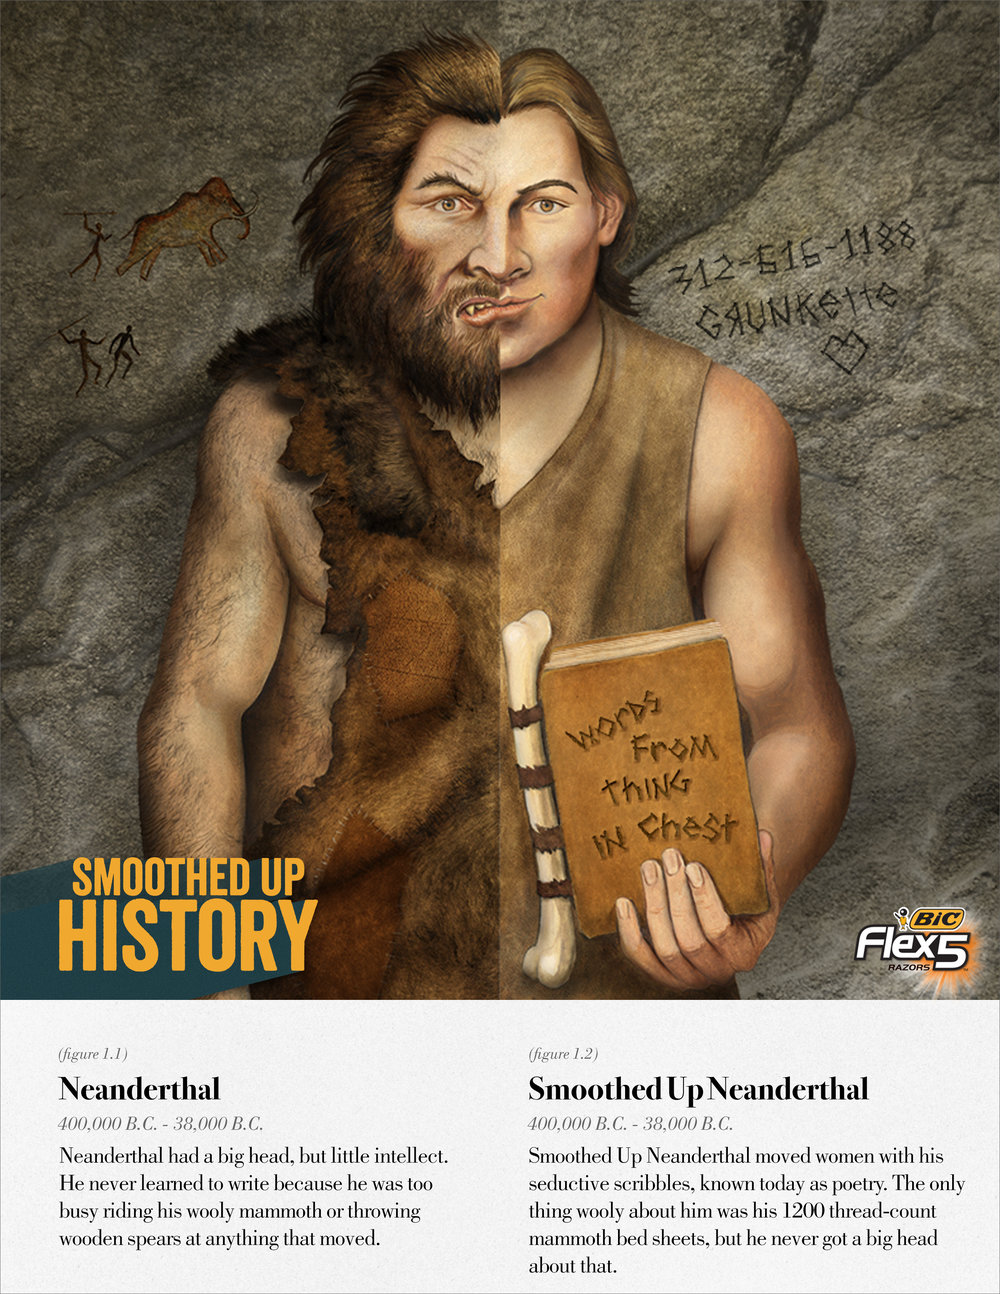 SmoothedUpHistory_Textbook_Layout_0000_Neanderthal.jpg